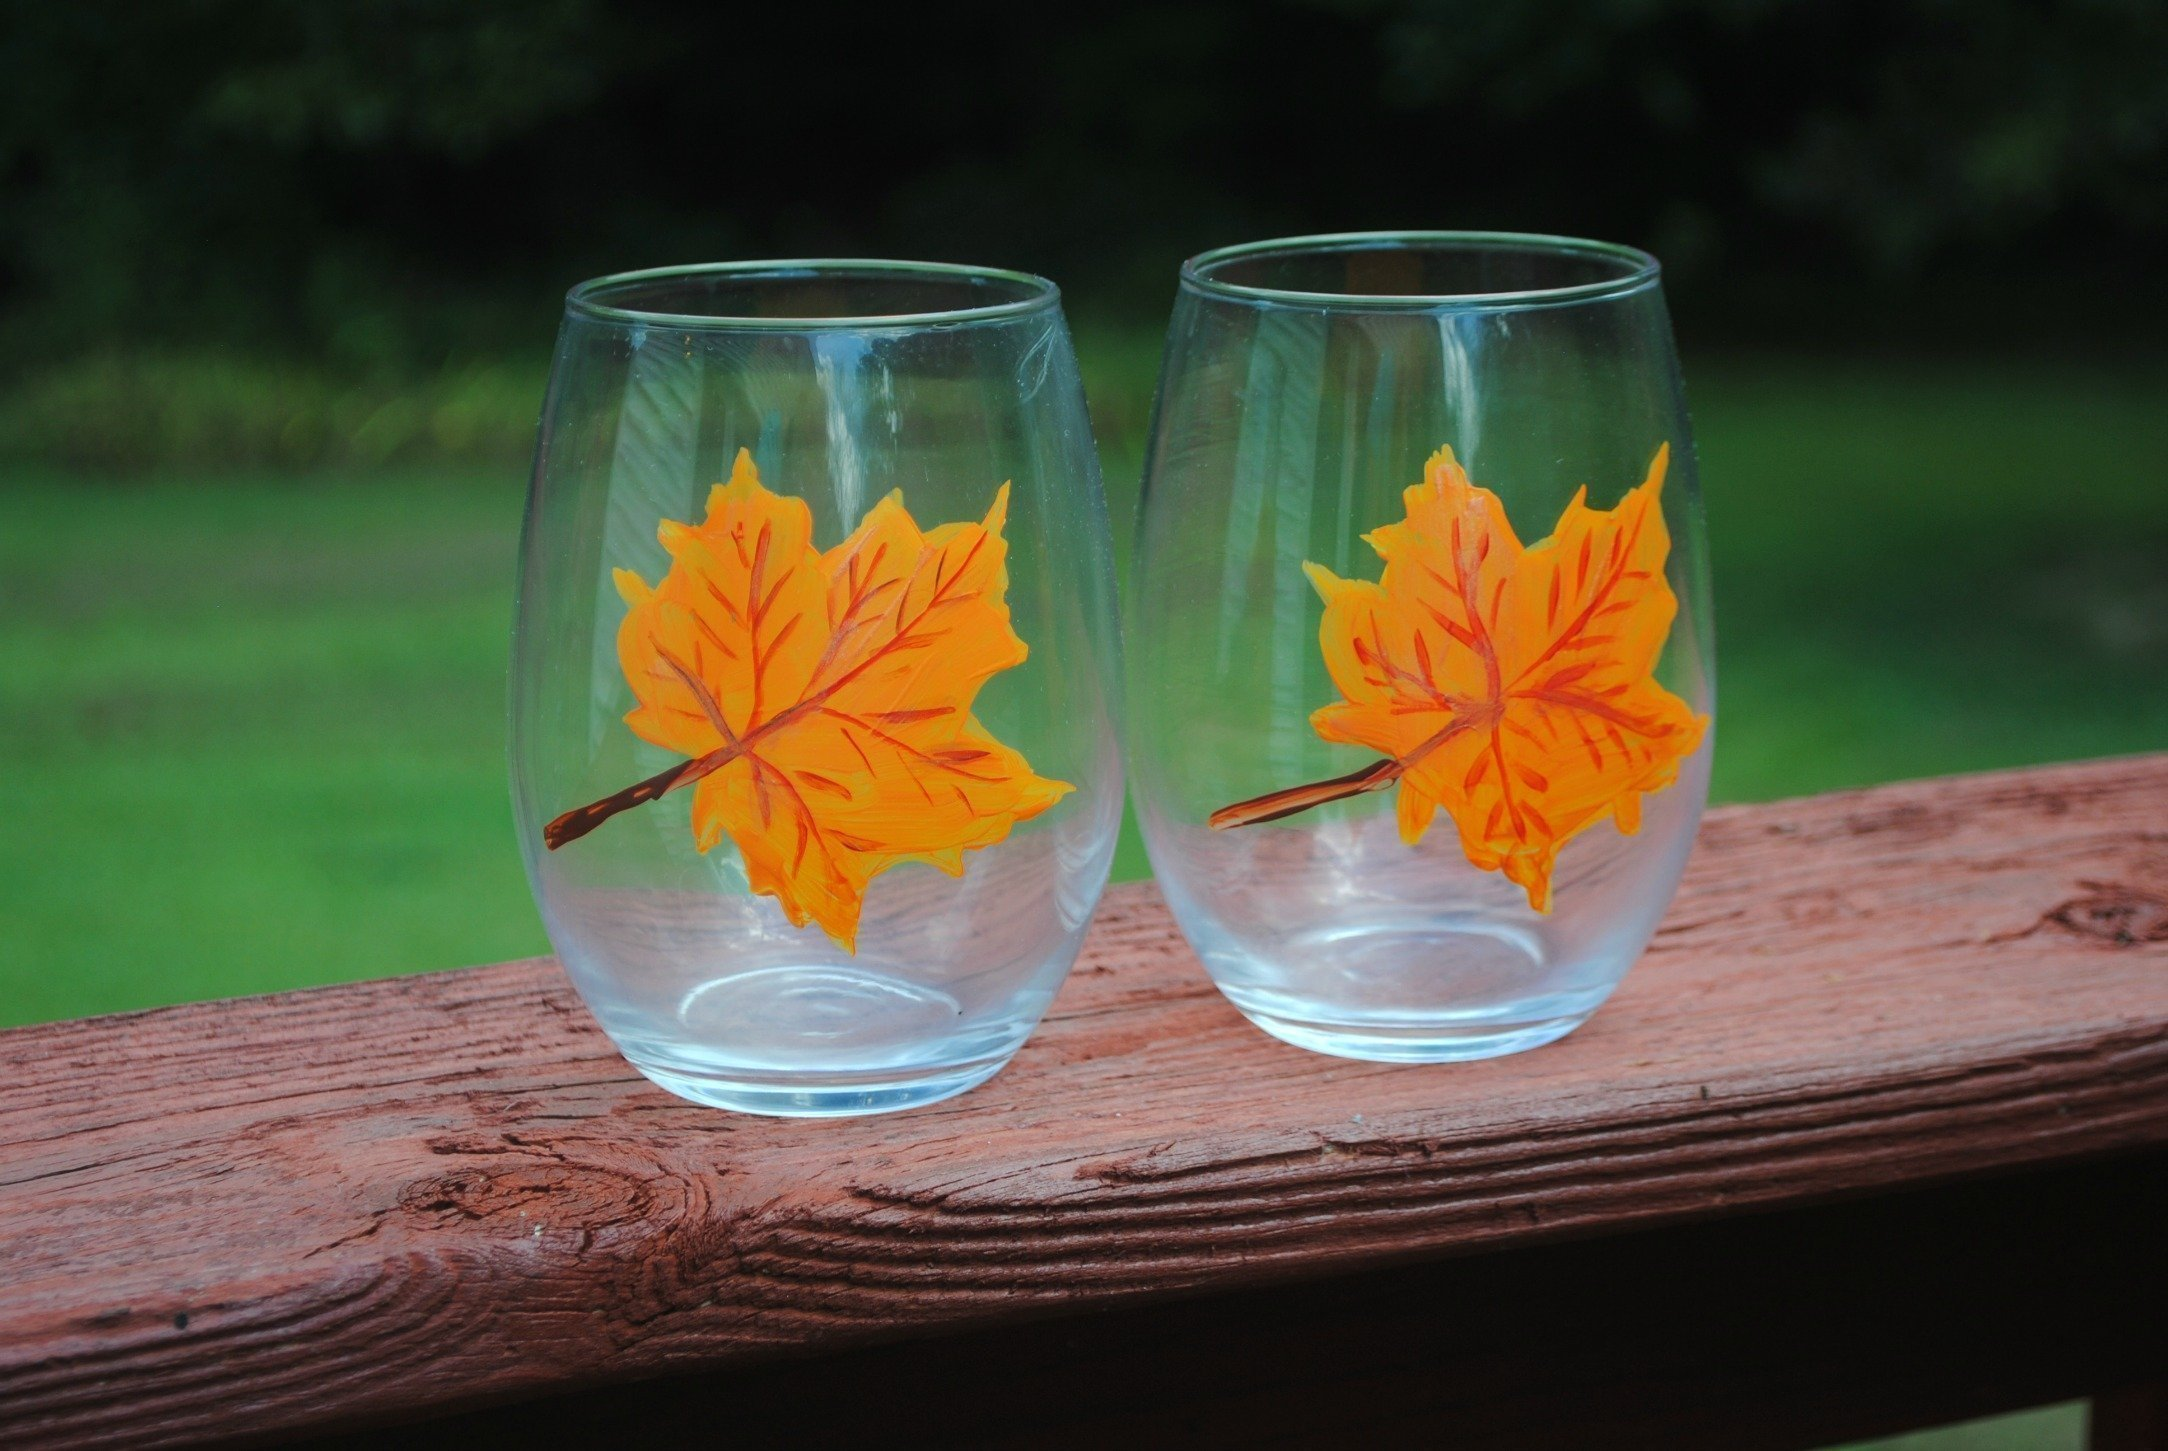 Fall Maple Leaf Hand Painted Stemless Wine Glasses (Set of 2), Autumn Home Décor